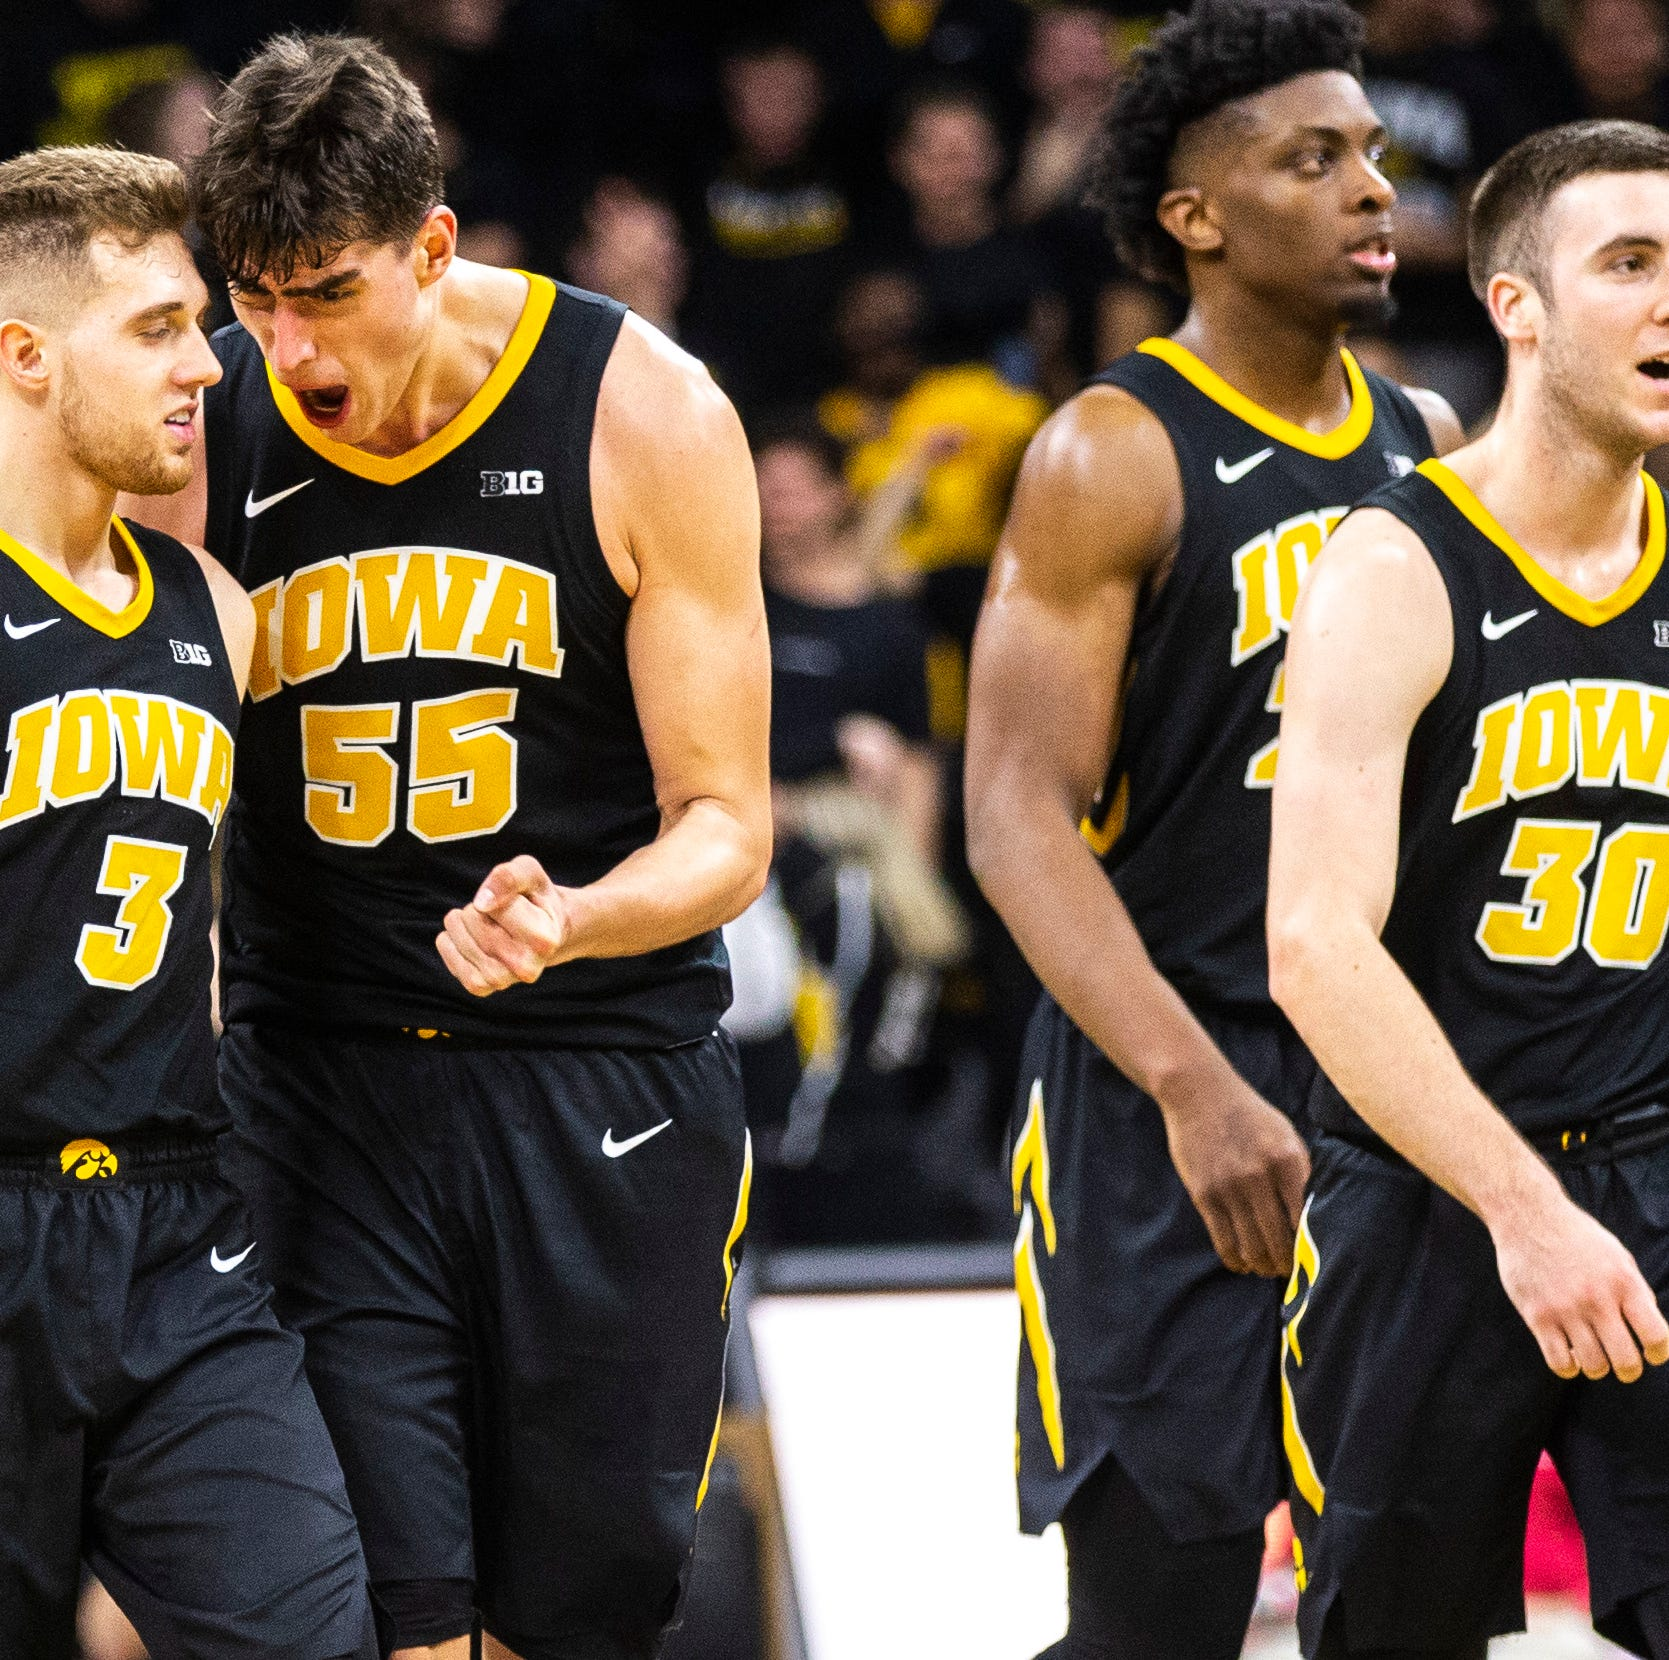 Inside Iowa's rise from 14-19 team to NCAA Tournament berth